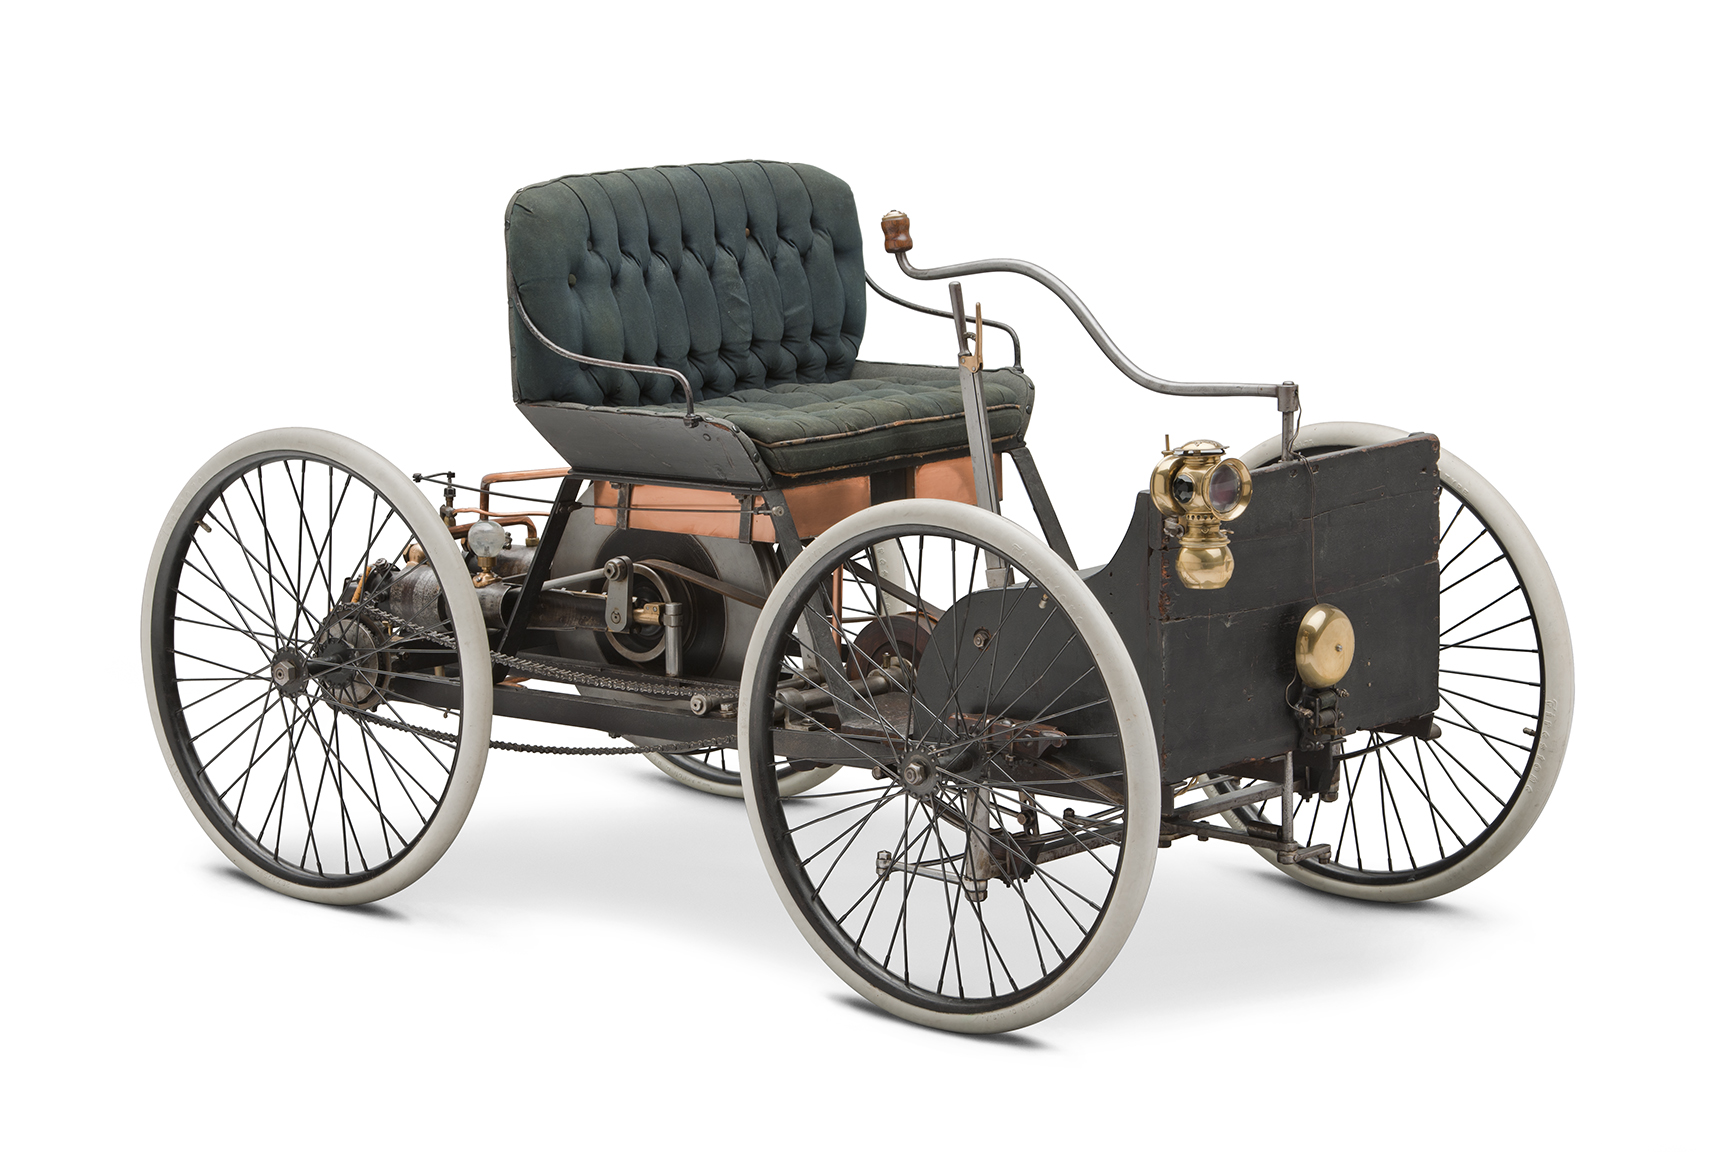 1896 Ford Quadricycle front 3/4